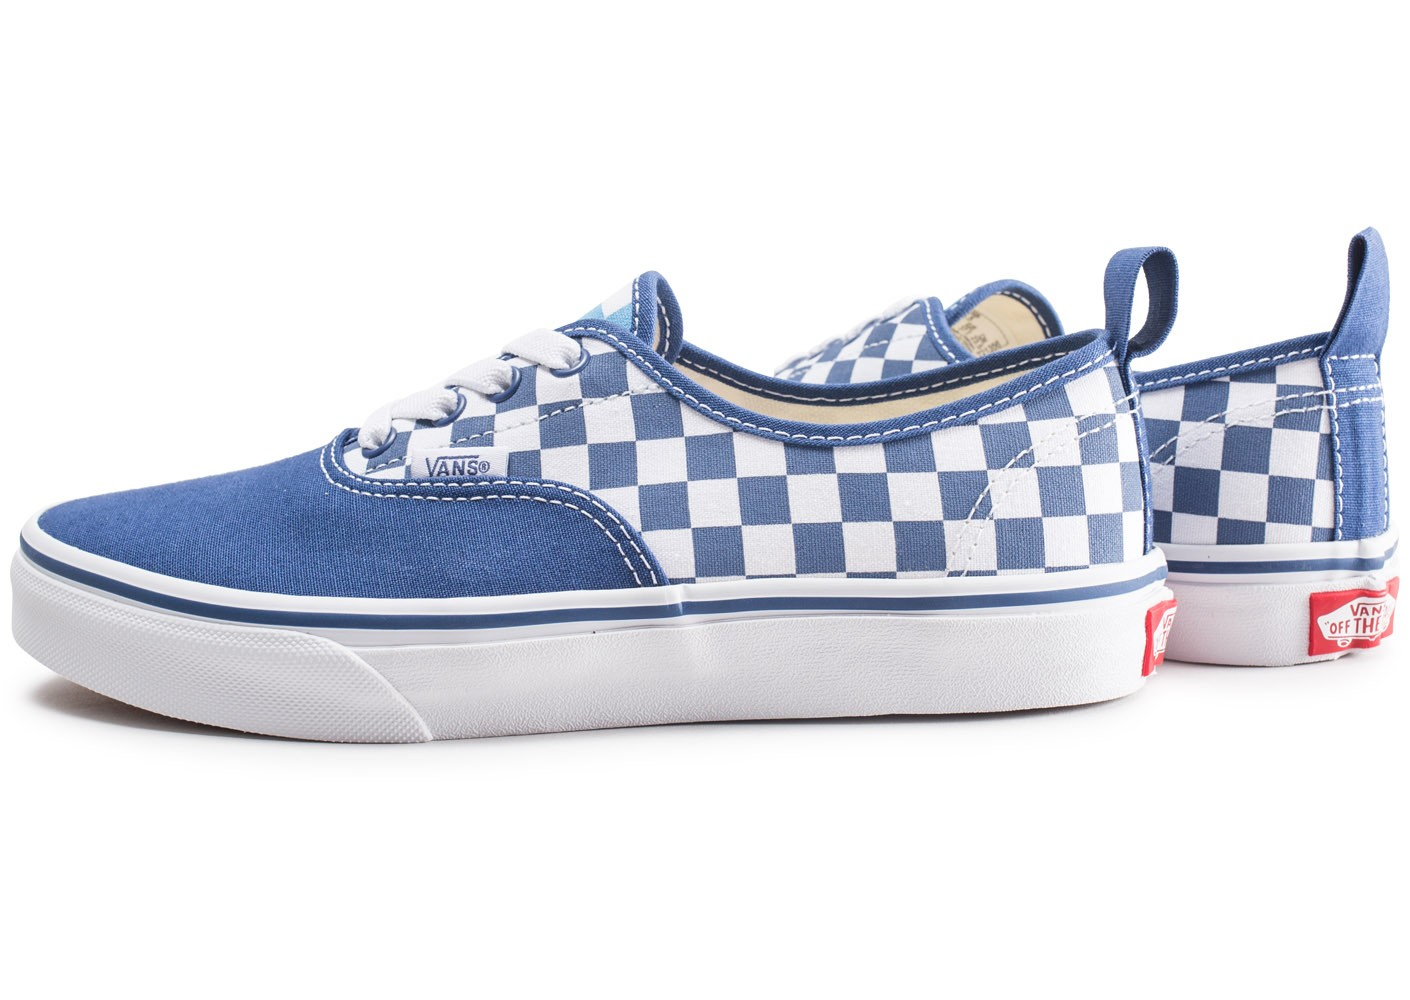 Vans Authentic blanche et bleue damier junior - Chaussures ...